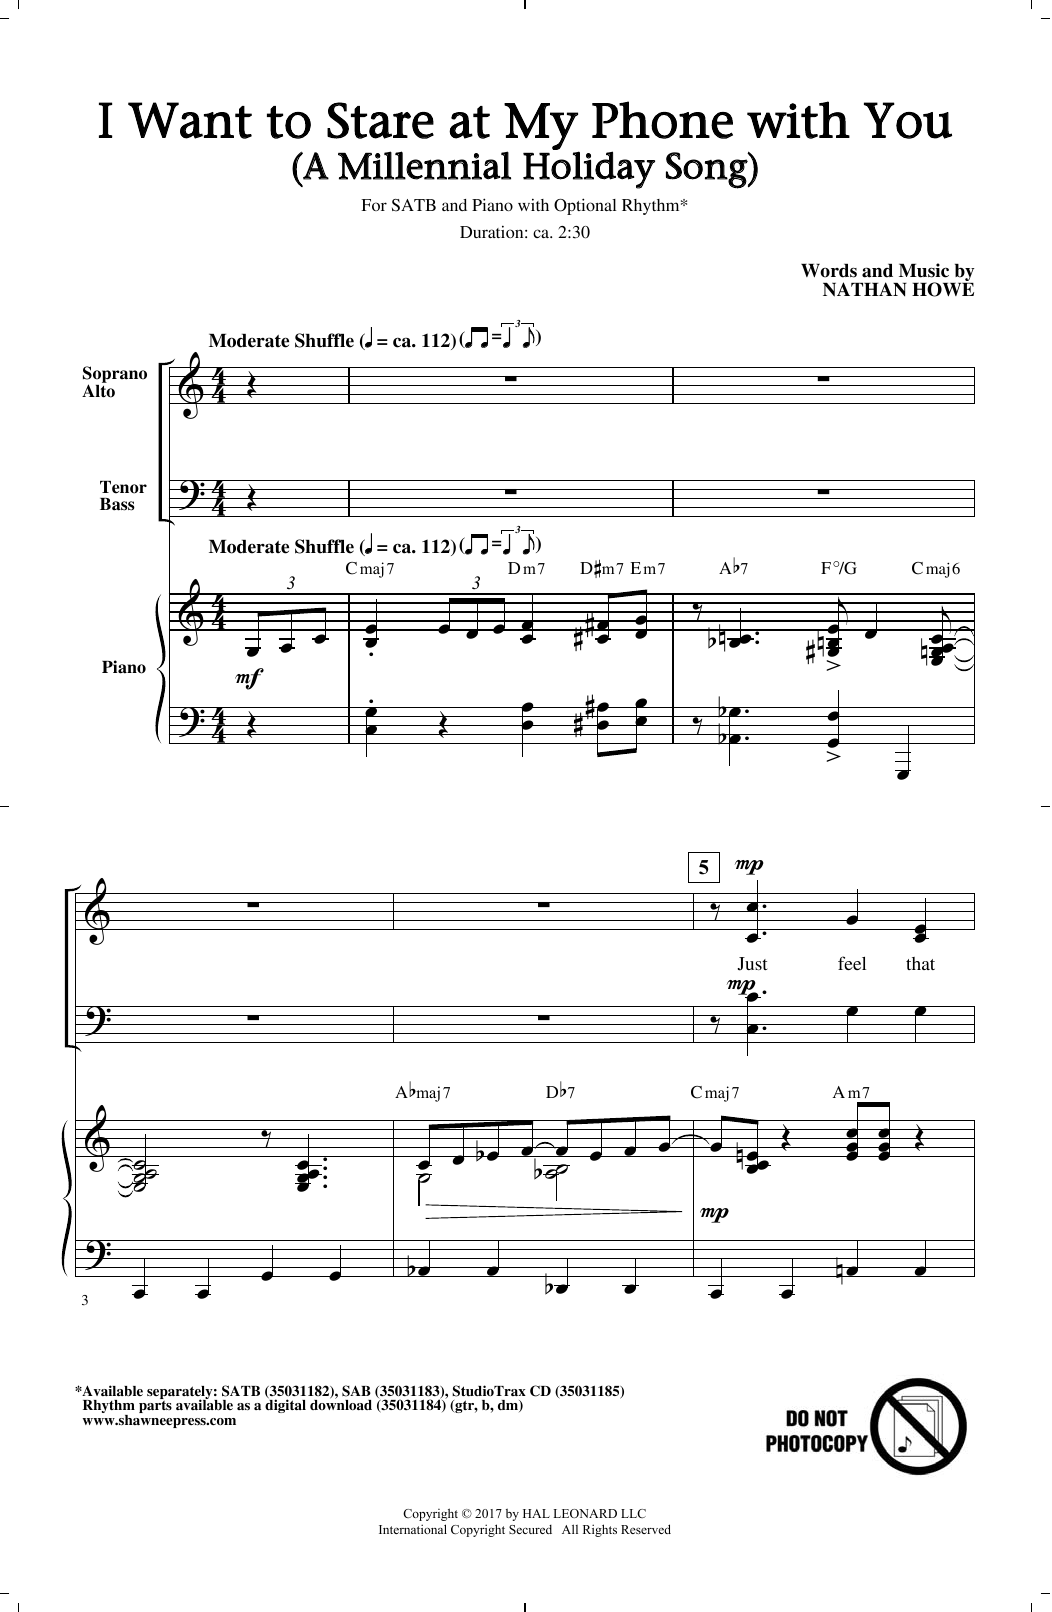 I Want To Stare At My Phone With You (A Millennial Holiday Song) Sheet Music